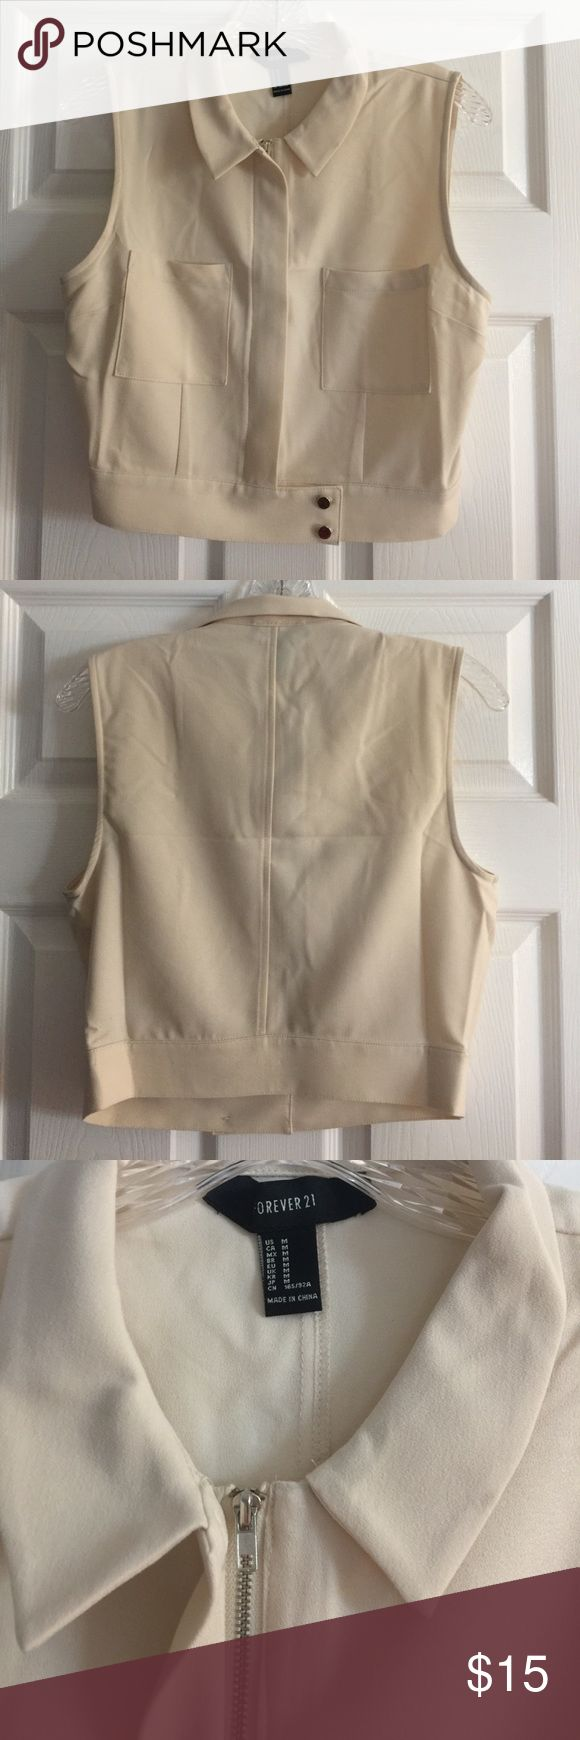 F21 Cream Zip-Up Vest Forever21 Cream zip up vest. Double breasted pockets, double buttons on bottom. NWOT. Forever 21 Jackets & Coats Vests